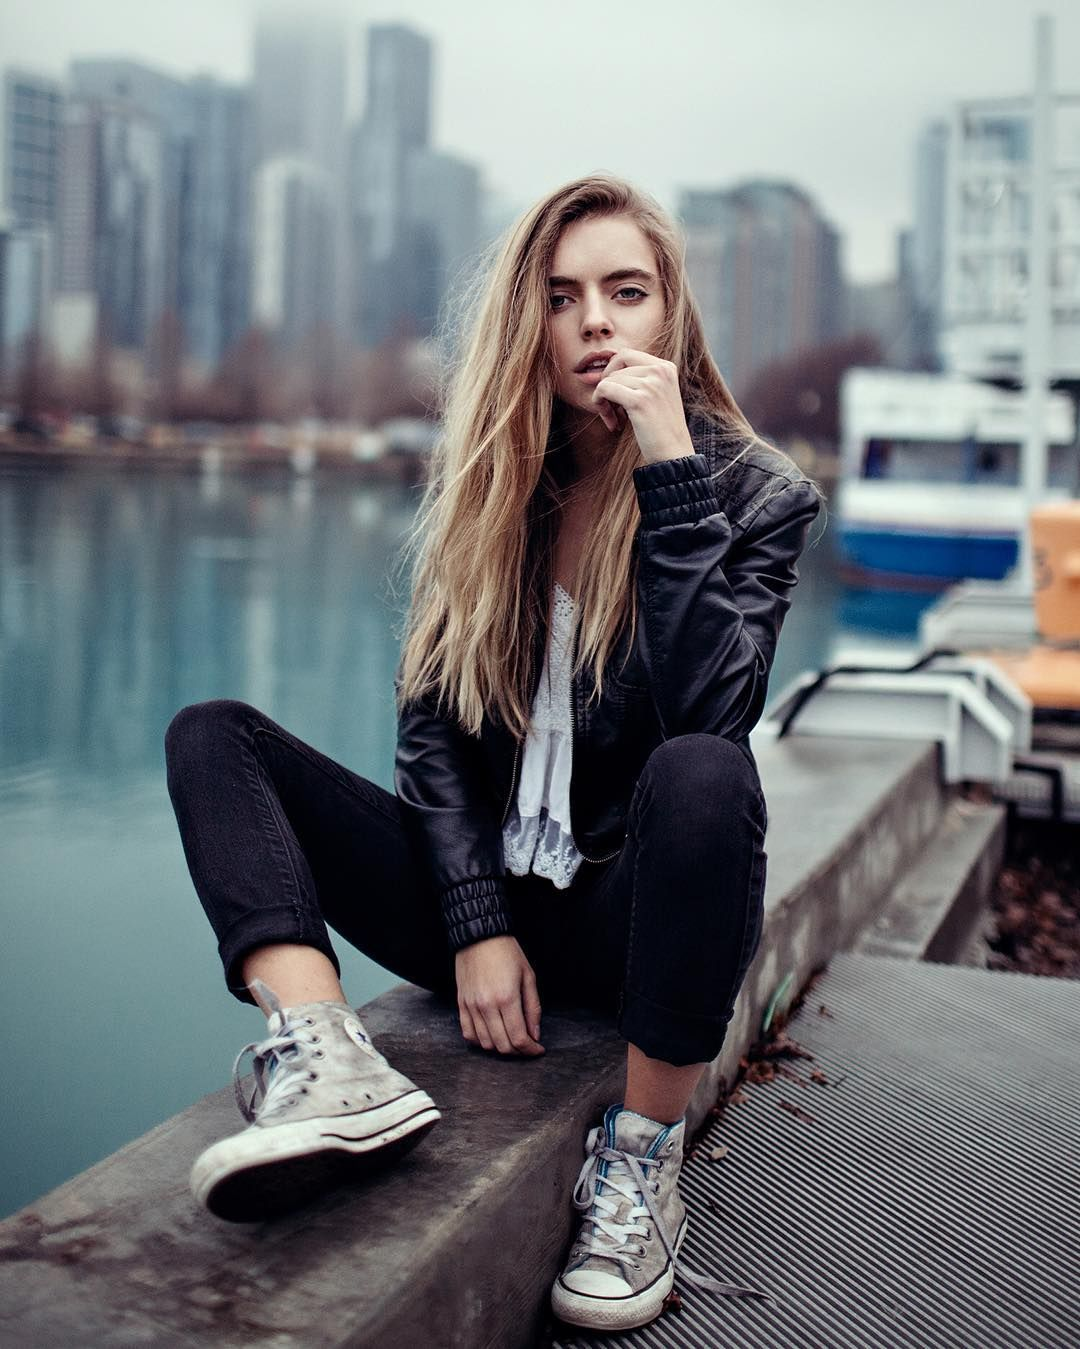 Pin by McKenna Munden on Blog | Fashion photography poses ...